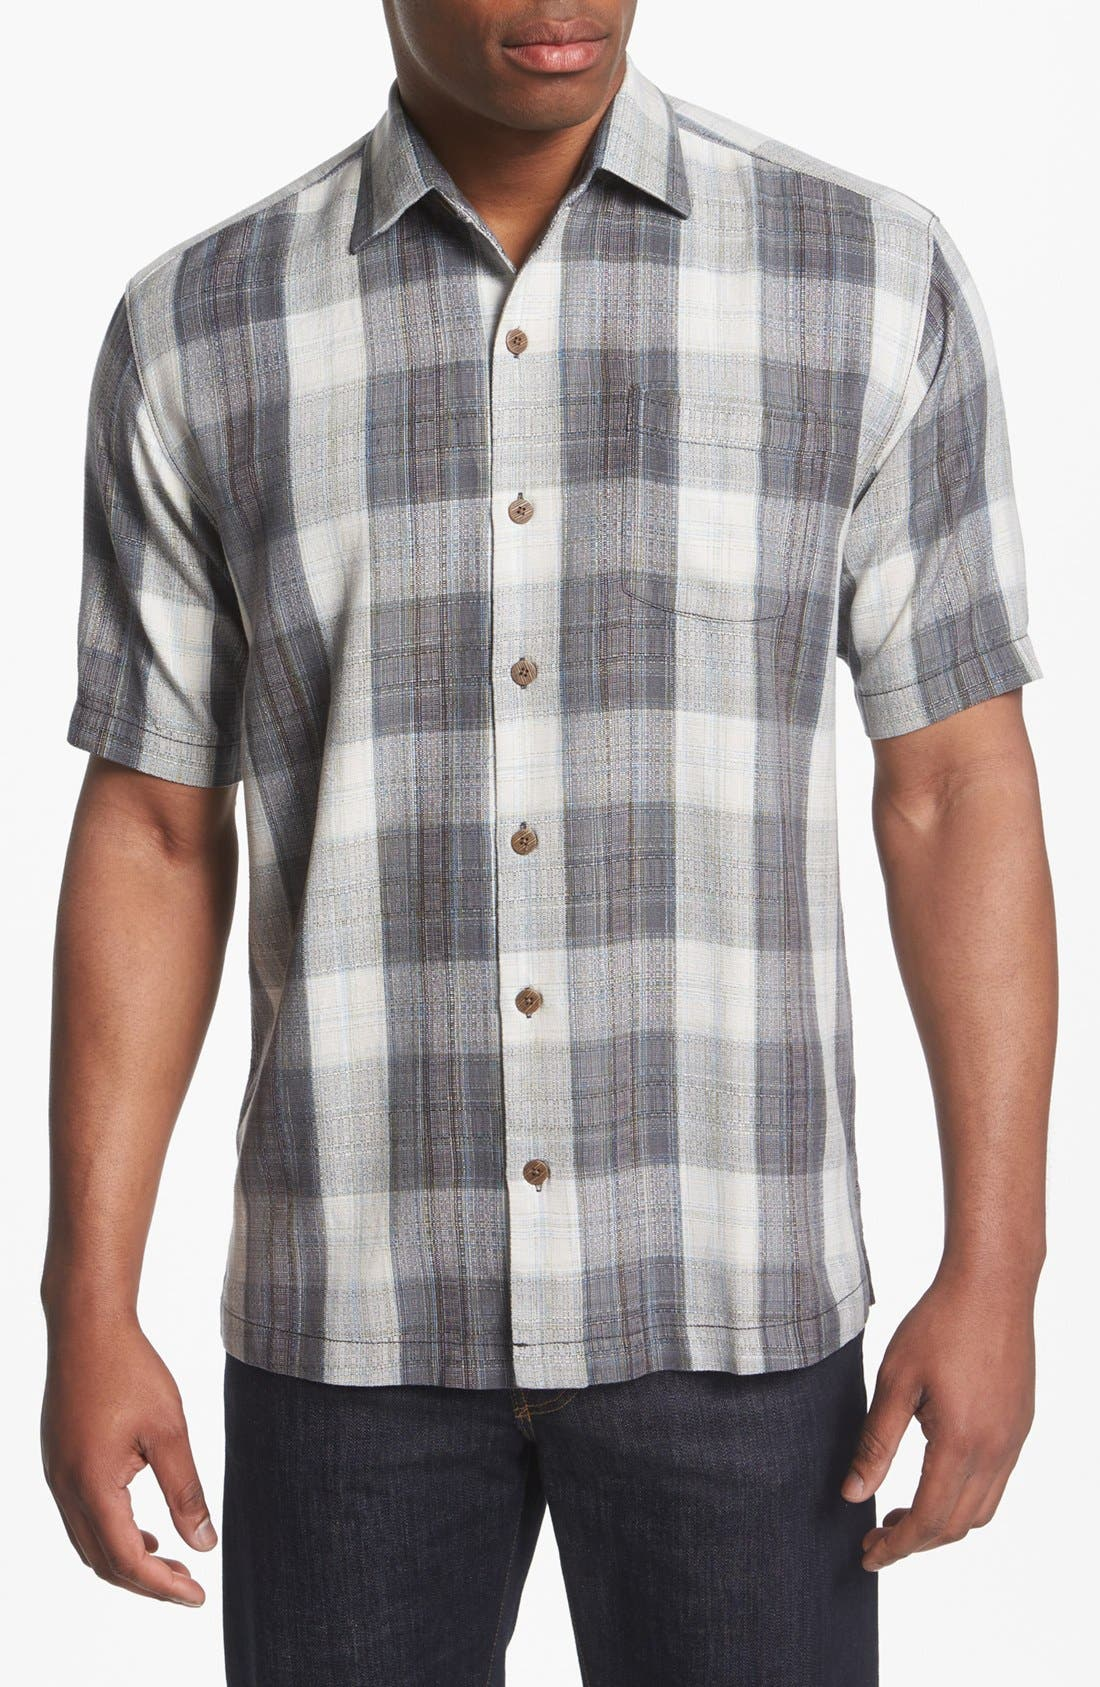 Alternate Image 1 Selected - Tommy Bahama 'Seaside Plaid' Silk Campshirt